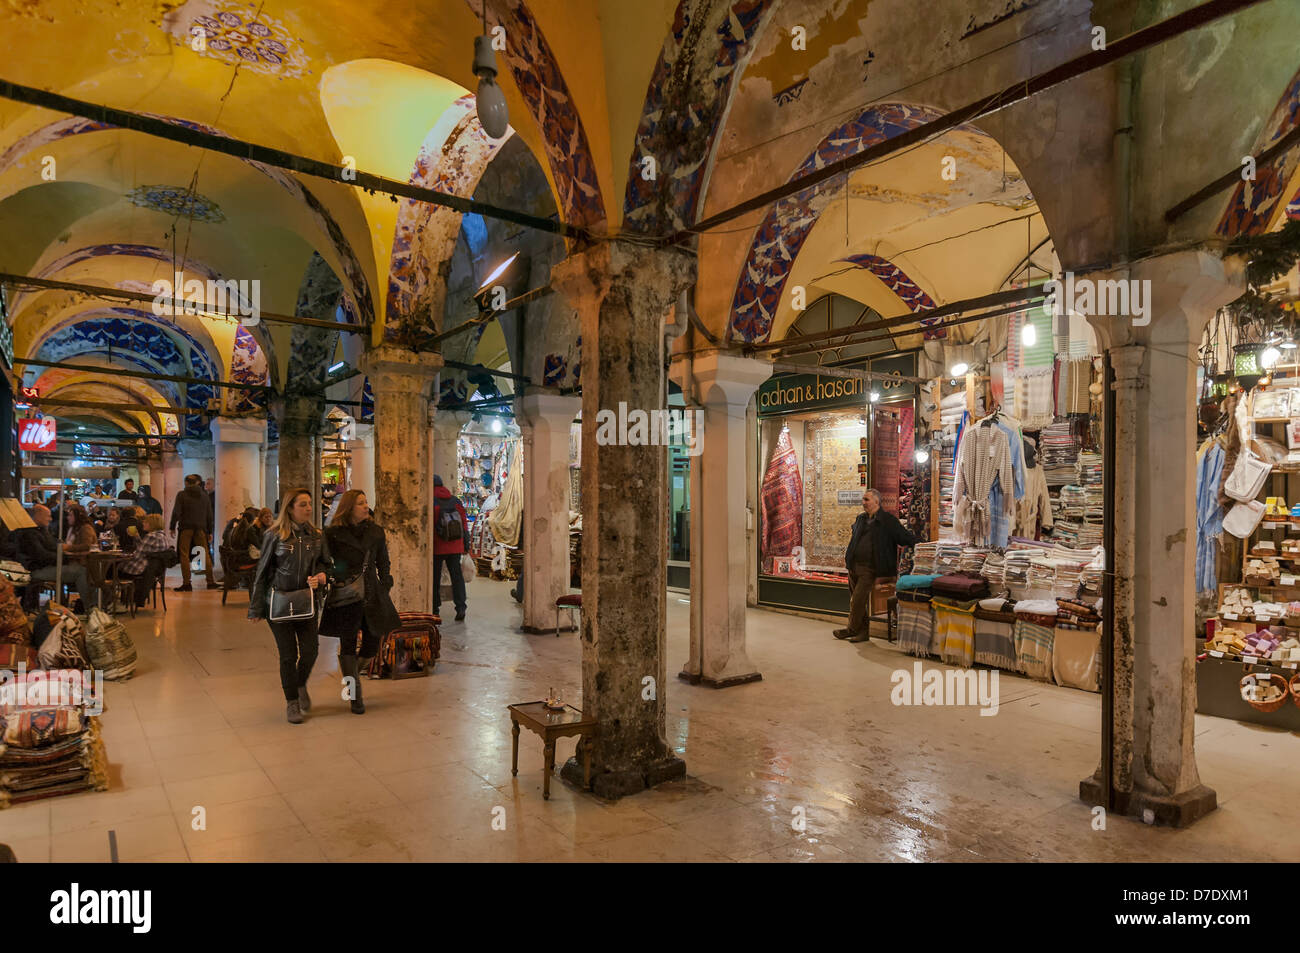 The Grand Bazaar (Covered Bazaar) in Istanbul is one of the largest and oldest covered markets in the world. - Stock Image